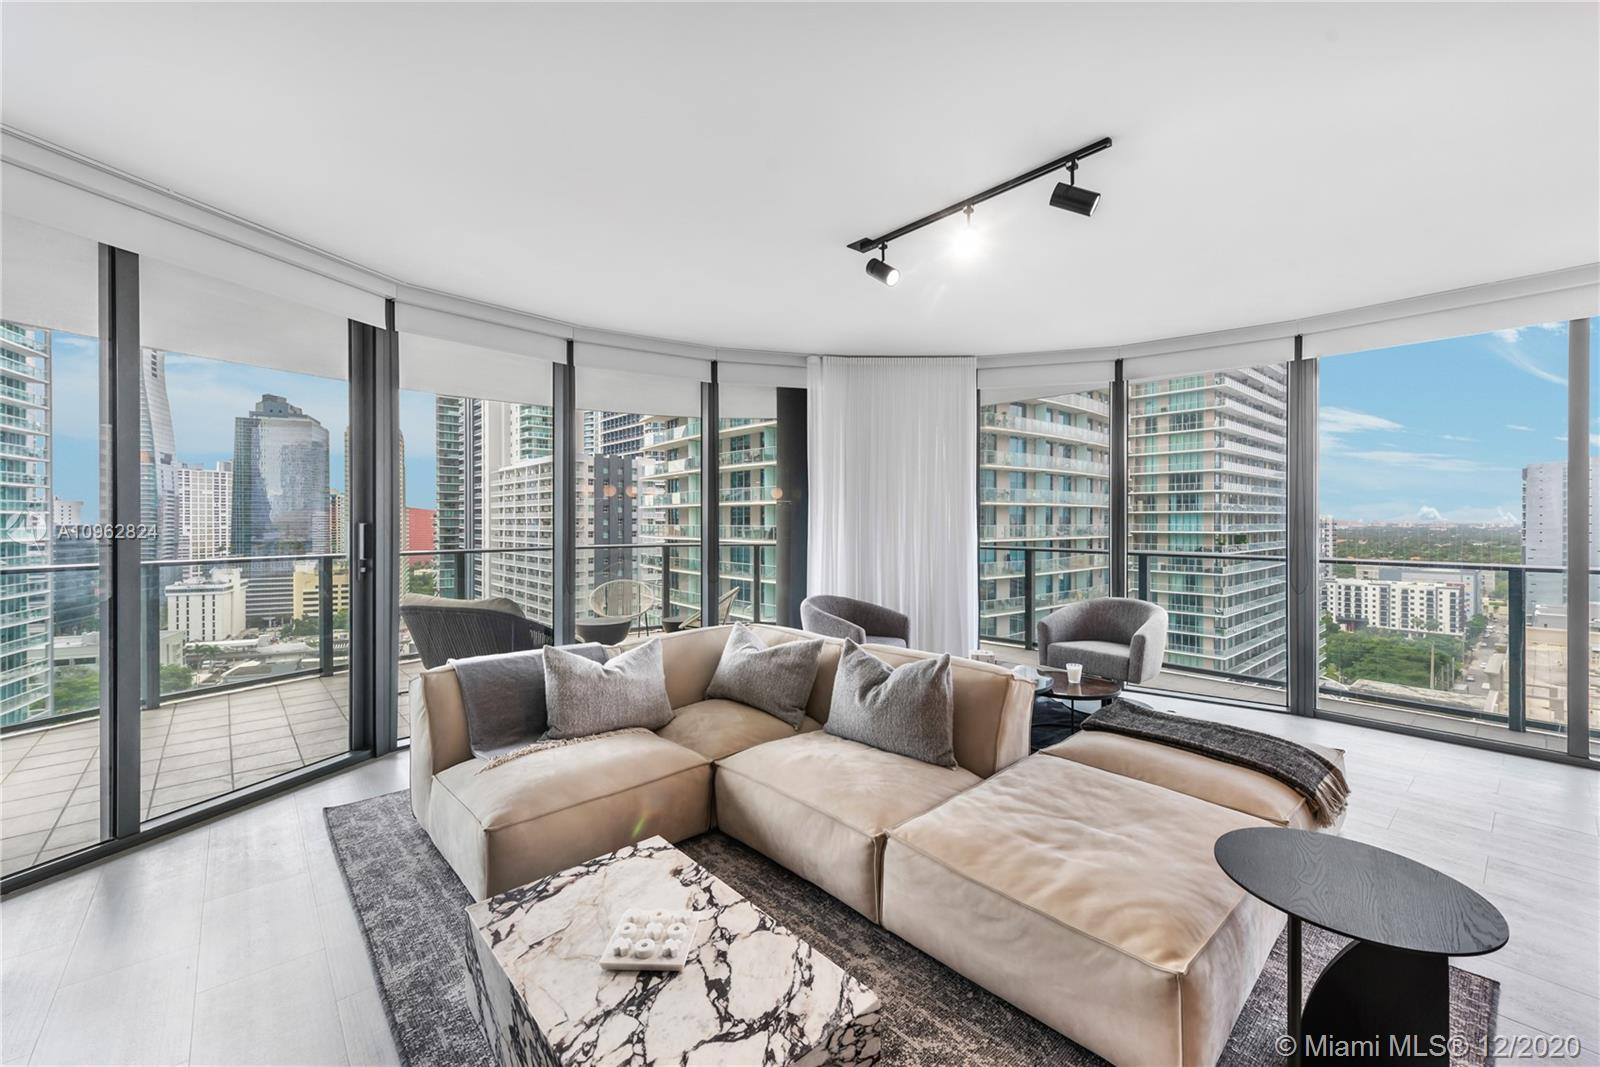 Presenting the opportunity to live at Miami's newest architectural icon: Brickell Flatiron Tower Residence#2102. Largest layout available for tower residences, this unit is complete w 3BD/3.5BA, floor to ceiling windows & deep elliptical glass balconies that offer panoramic views from every room. Custom Snaidero kitchen, professional Miele appliances & imported Italian finishes showcase the level of quality of this renowned concierge building. Take living to new heights on the 64th Floor Rooftop Deck boasting city & water views, state of the art spa + fitness center & an unforgettable resort style pool. Located in the heart of Brickell & steps from Mary Brickell Village & Brickell City Centre, residents enjoy walkable access to countless choices of sidewalk cafés, fine dining & shopping